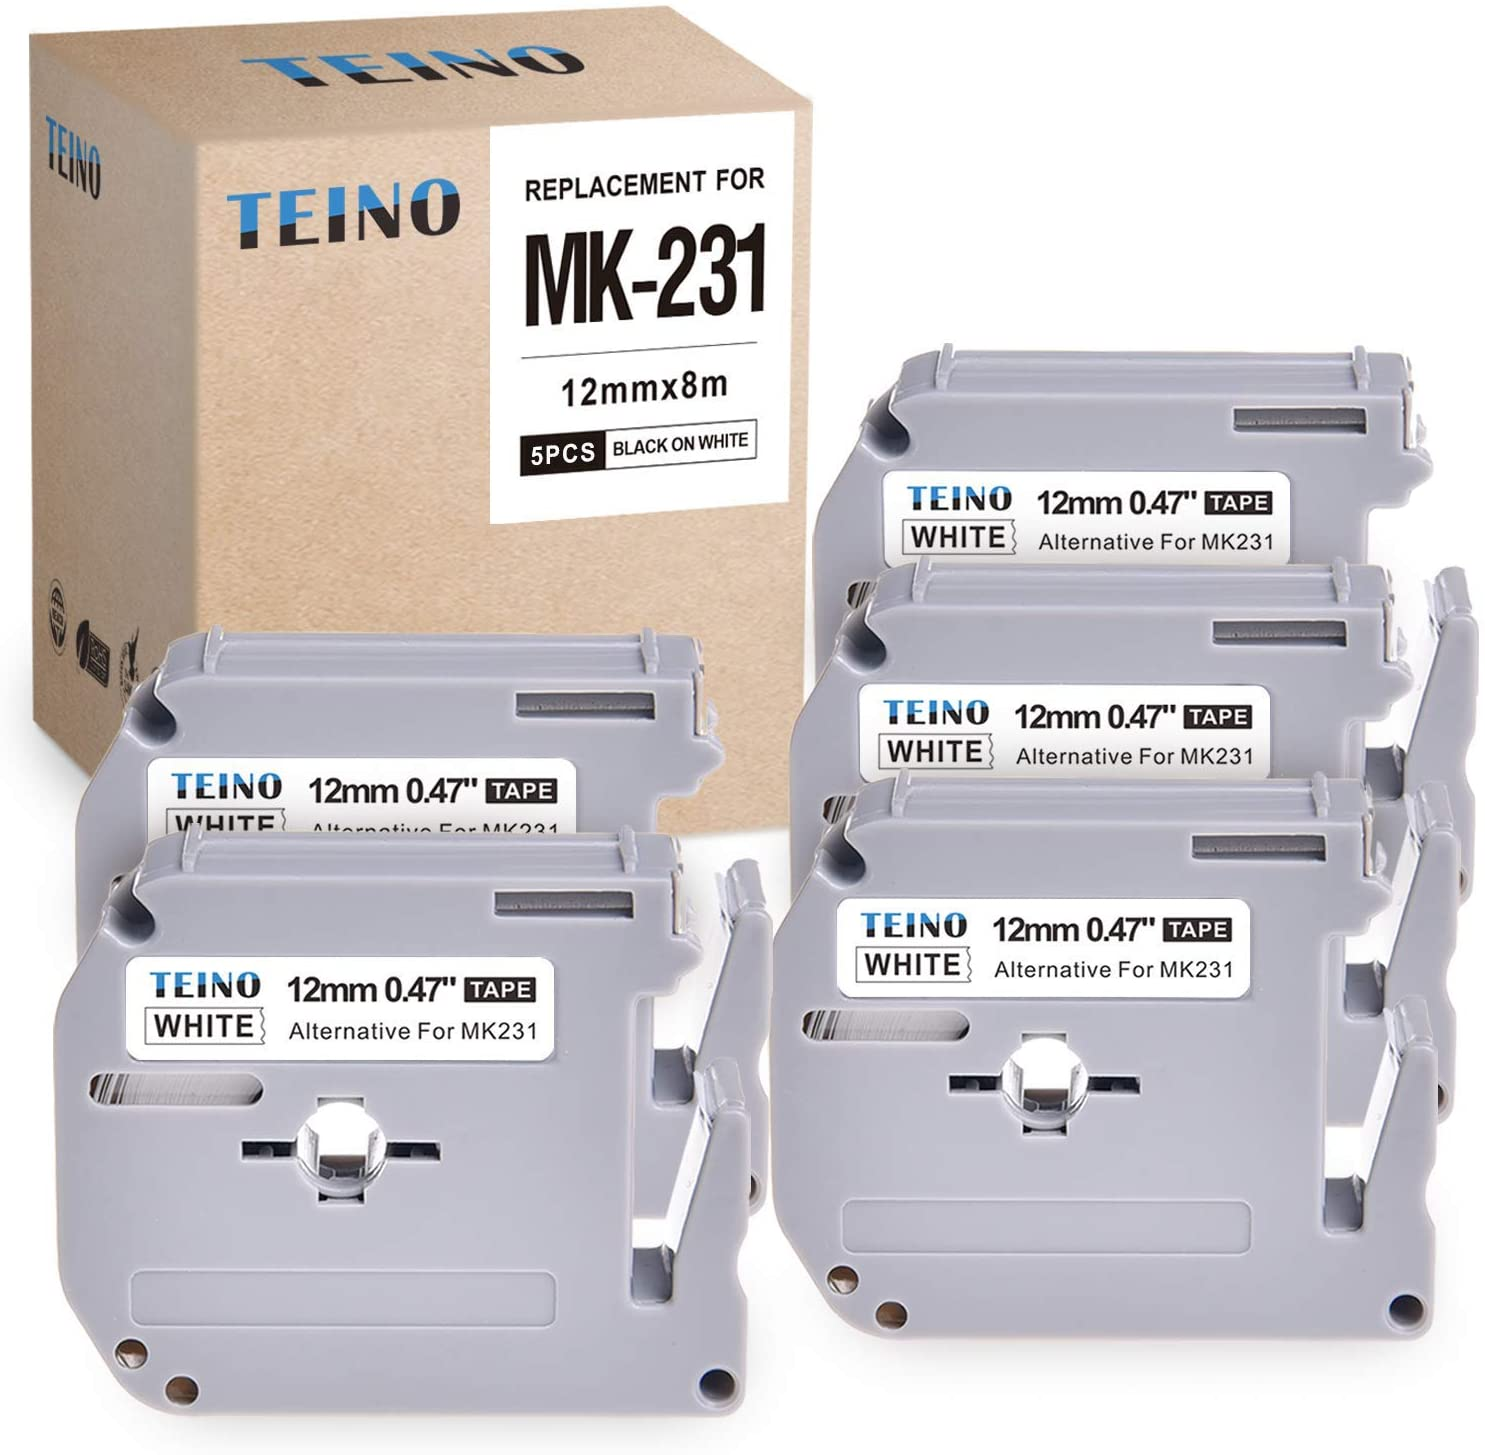 TEINO Compatible with M231 MK231 M-K231 Black on White Label Tape Cartridge Use with P-Touch Label Maker PT-90 PT-M95 PTM95M PT-70SR PT-70BM PT-80 PT-65,0.47 Inch(12mm) x26.2 Feet(8m), 5-Pack